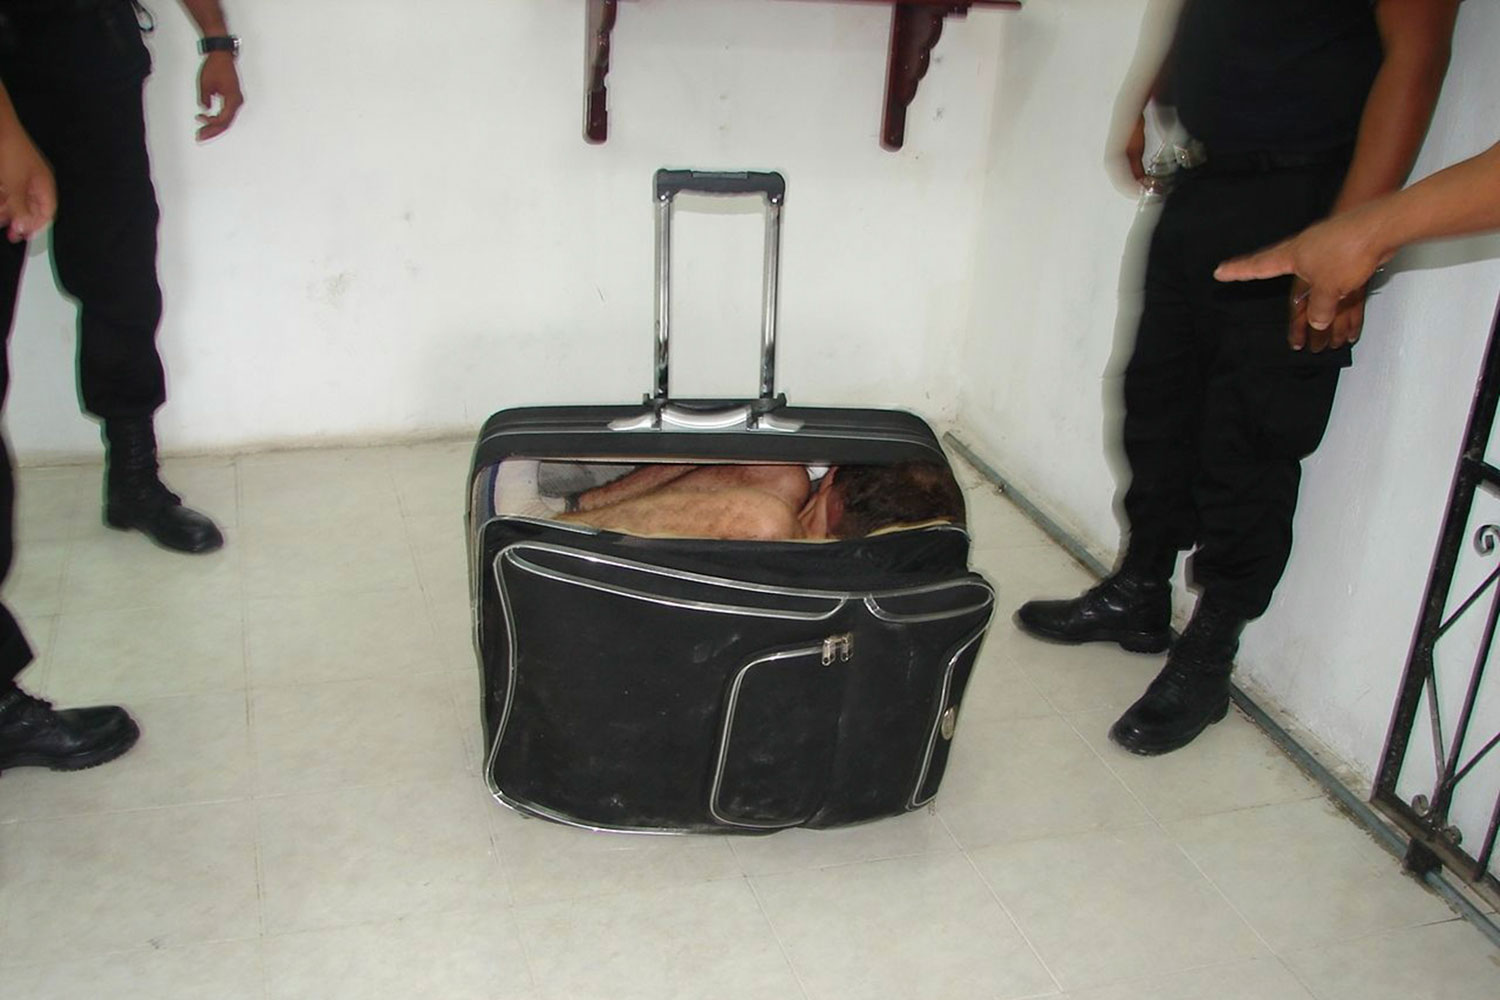 July 2, 2011. Prison guards stand around inmate Juan Ramirez Tijerina as he hides in a suitcase during an escape attempt from a prison in Chetumal in this July 2, 2011 handout photo. Ramirez Tijerina tried to escape from prison by hiding inside the suitcase after a conjugal visit on Saturday, according to the authorities.